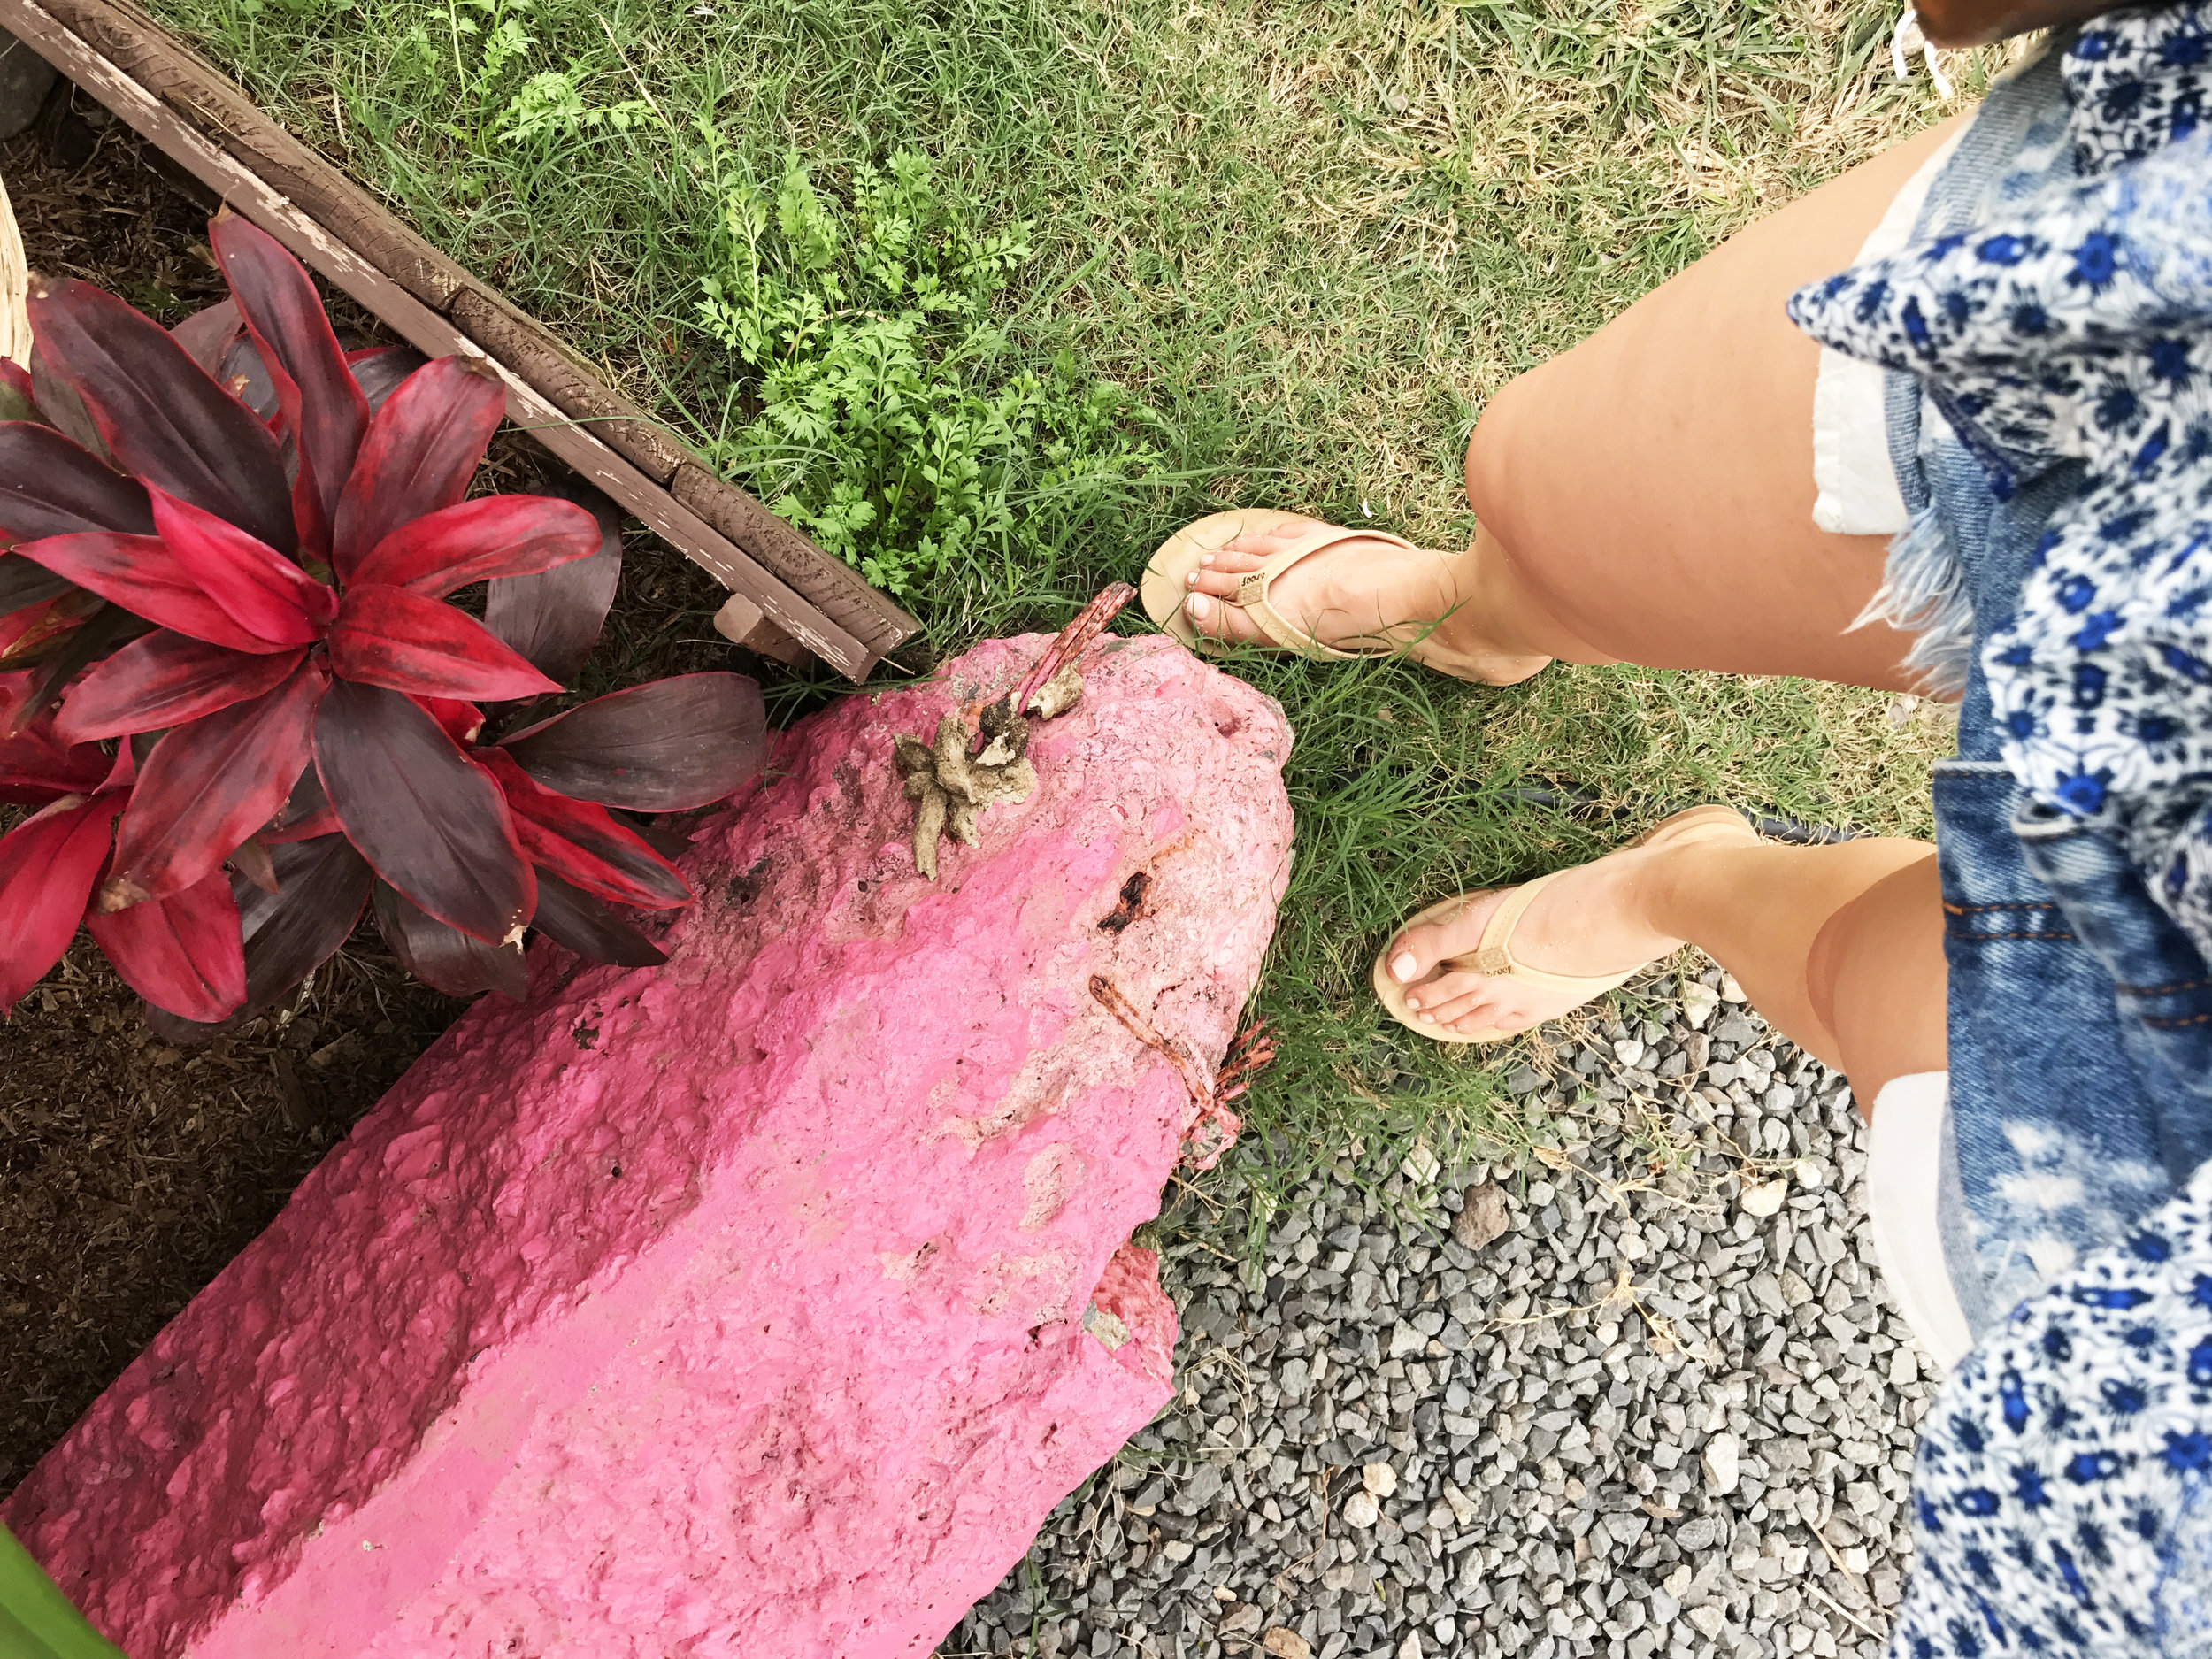 oahu ootd island style vacation outfits